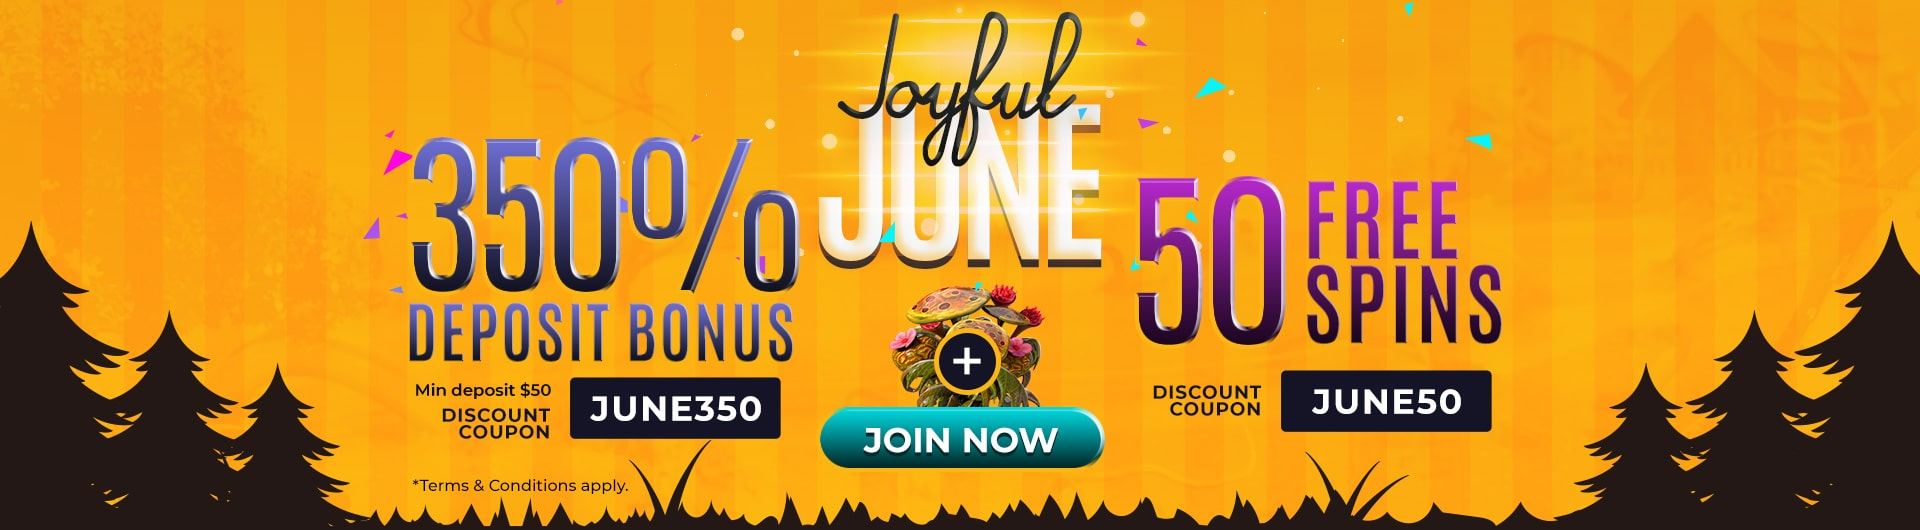 Joyful June Promotions from Slots 7 Casino